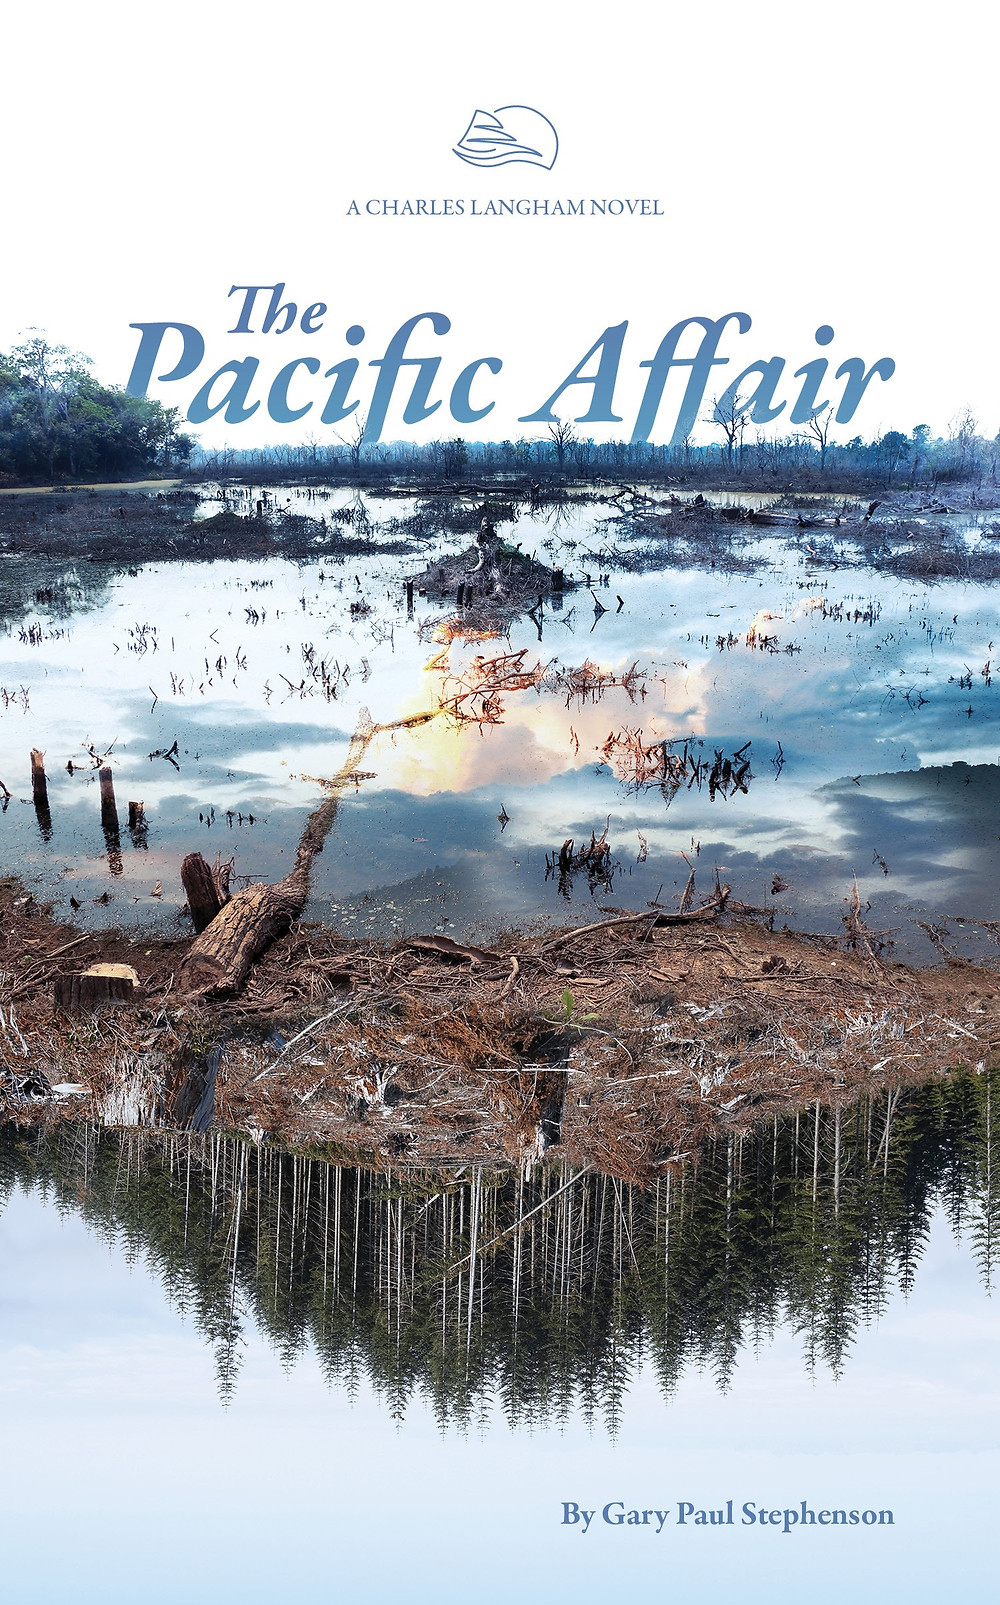 The Pacific Affair